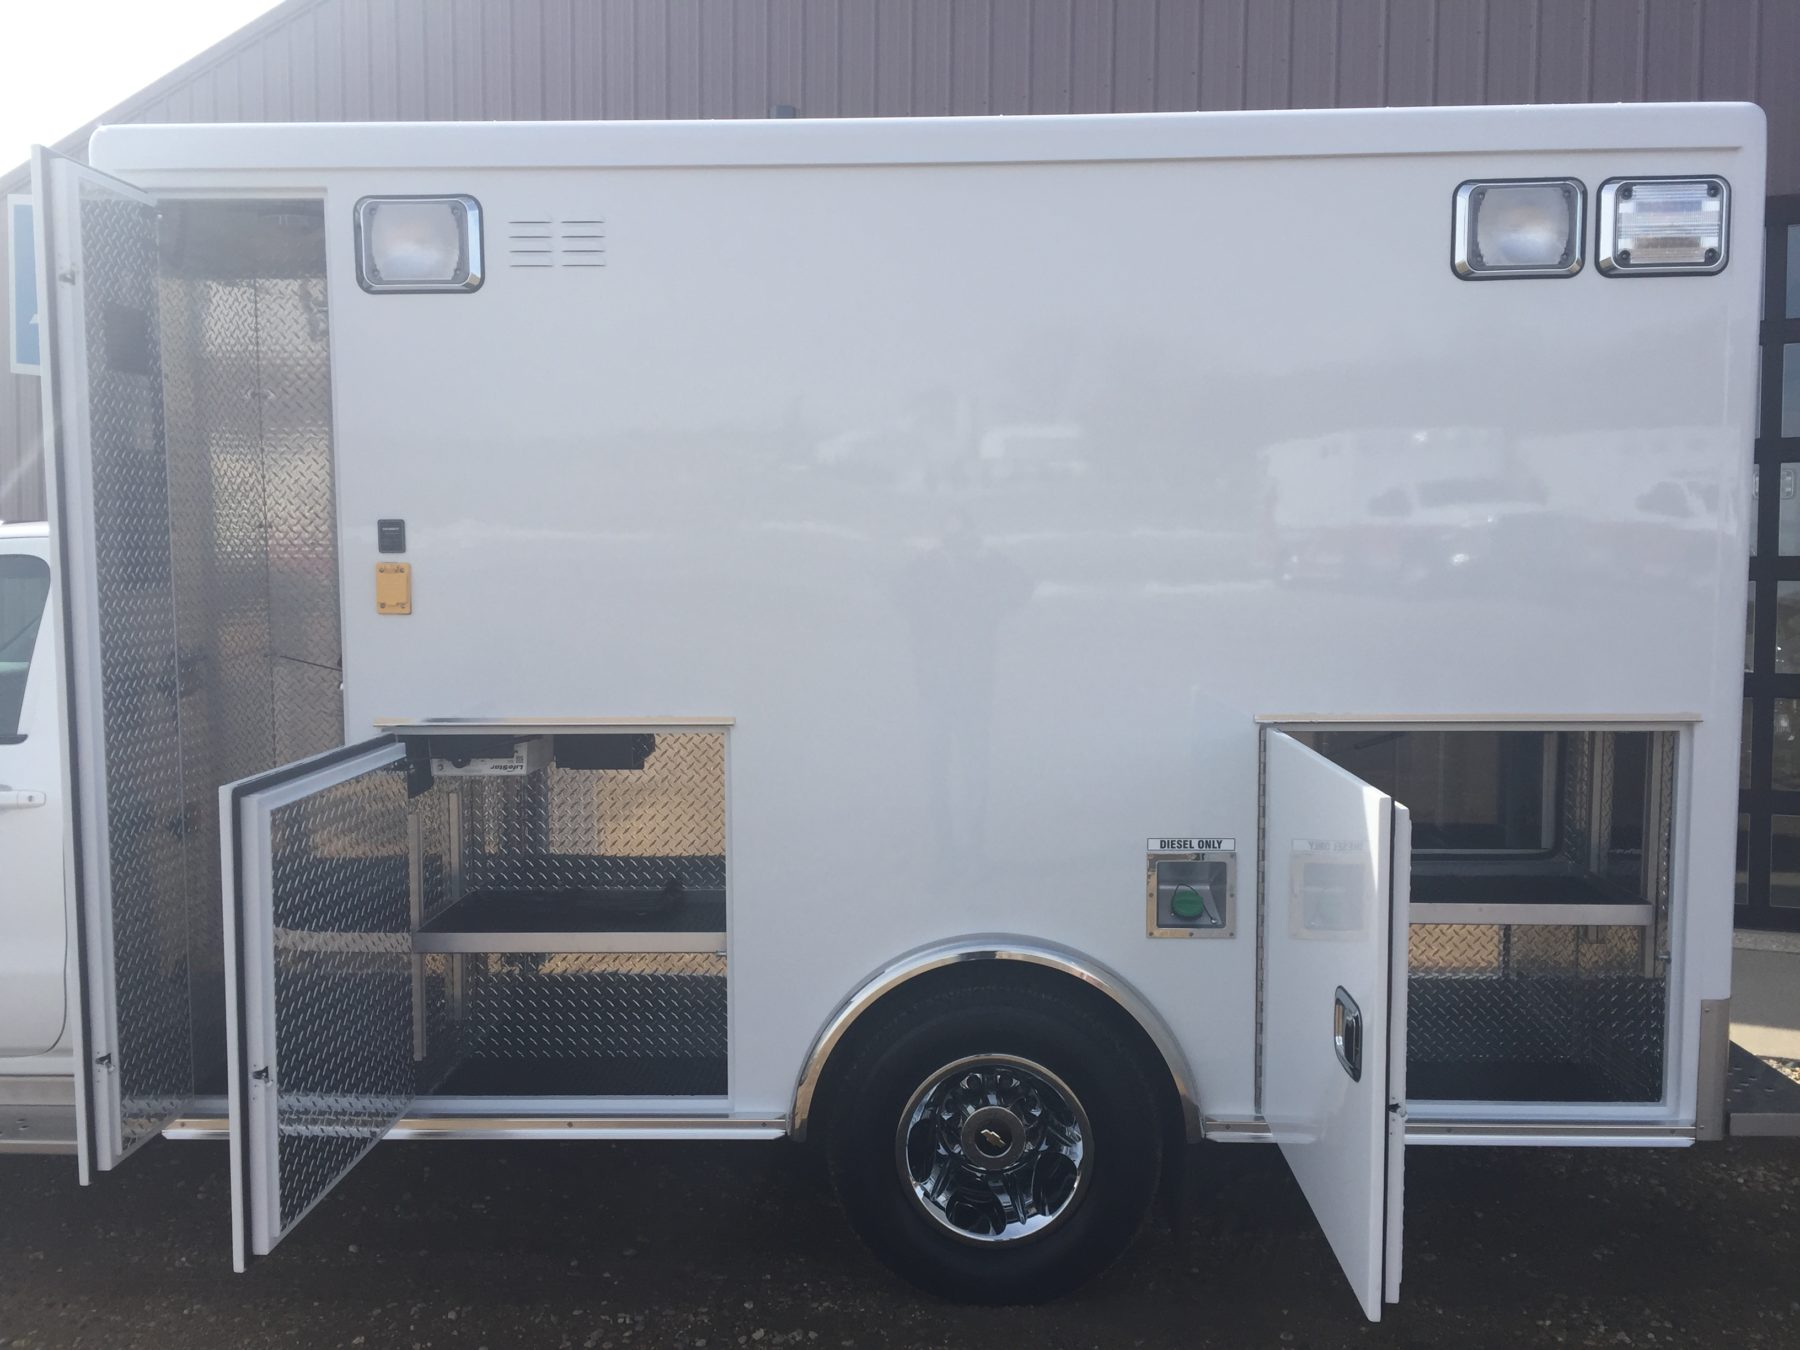 2019 Chevrolet K3500 4x4 Type 1 Ambulance For Sale – Picture 6